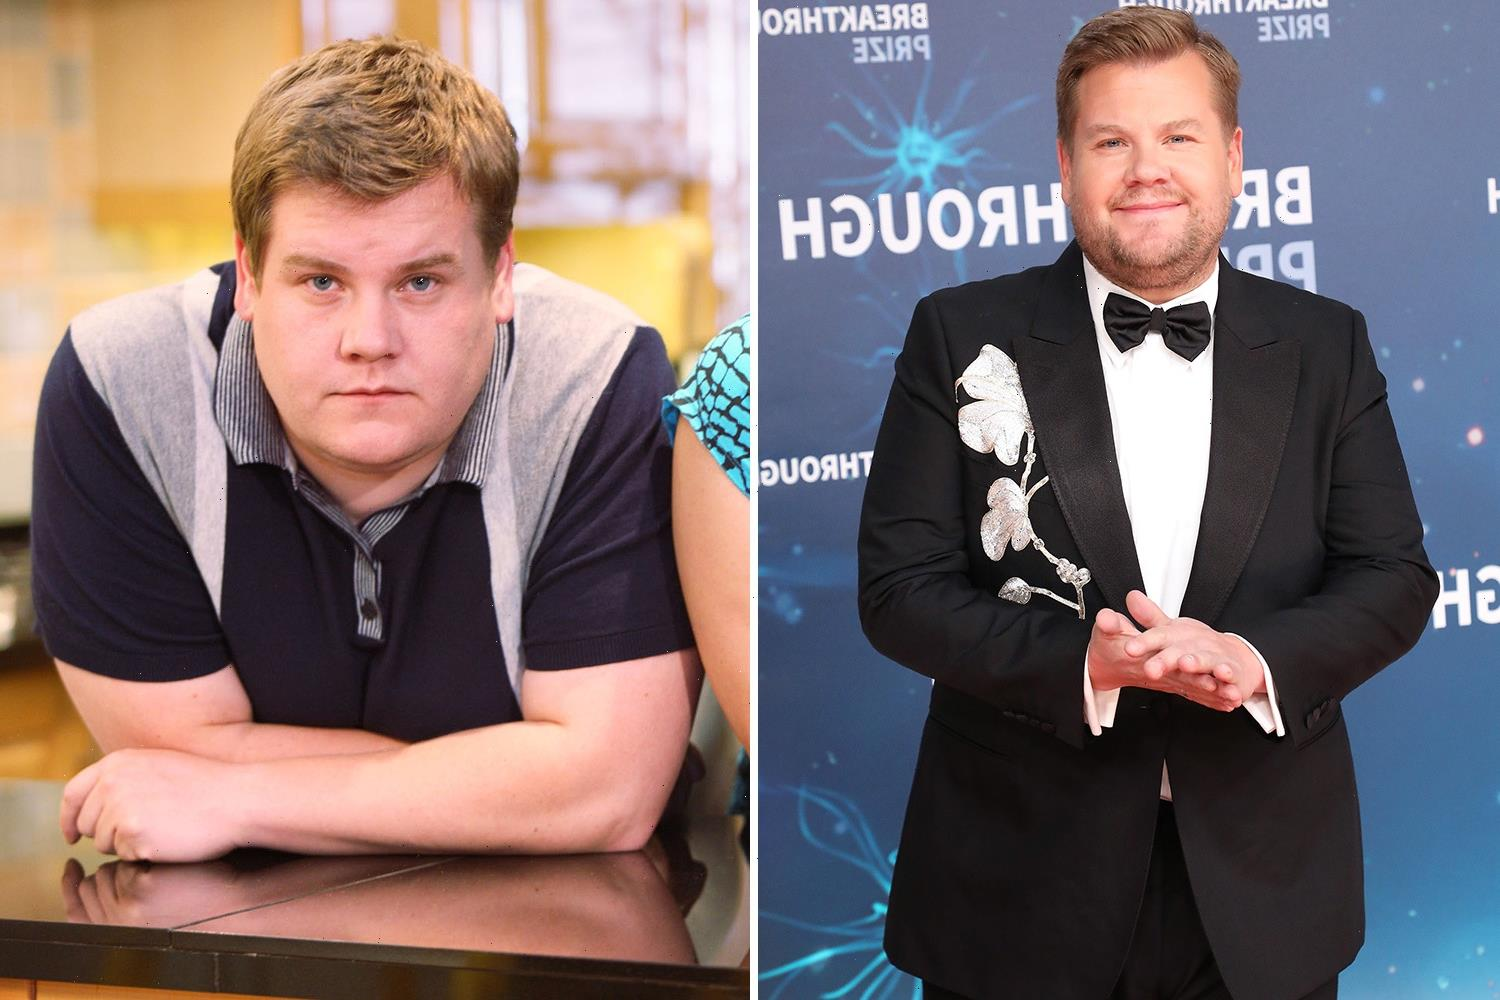 James Corden making his TV comedy comeback with new Amazon series Mammals – his first since Gavin and Stacey